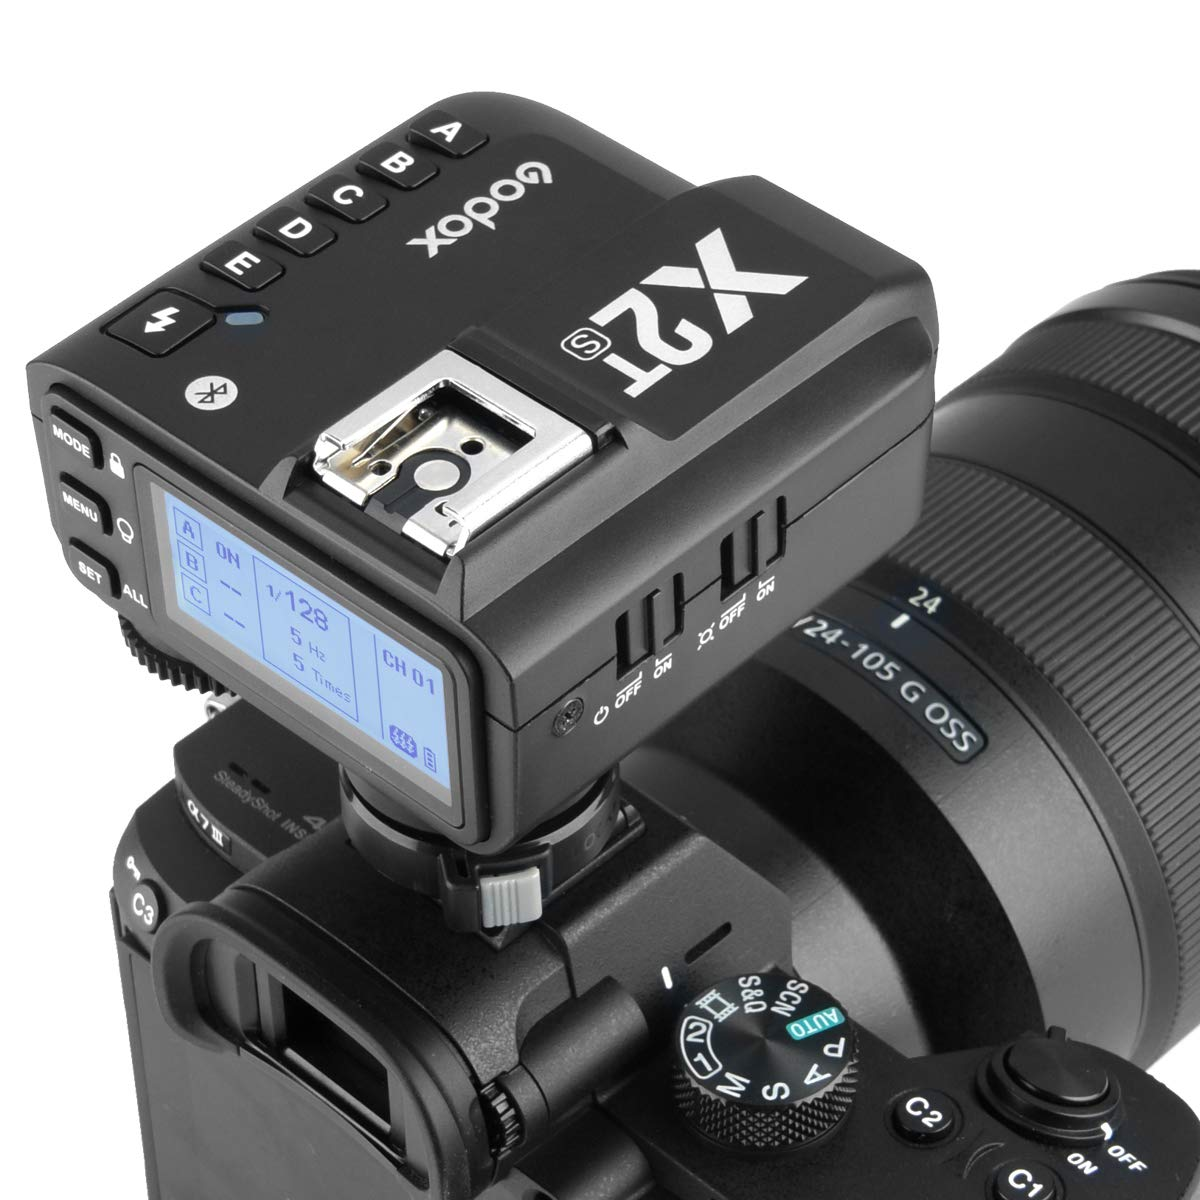 Godox X2T-S TTL Wireless Trigger, 1/8000s High-Speed Sync 2.4G TTL Transmitter, Compatible with Sony DSLR (X2T-S) by Godox (Image #7)